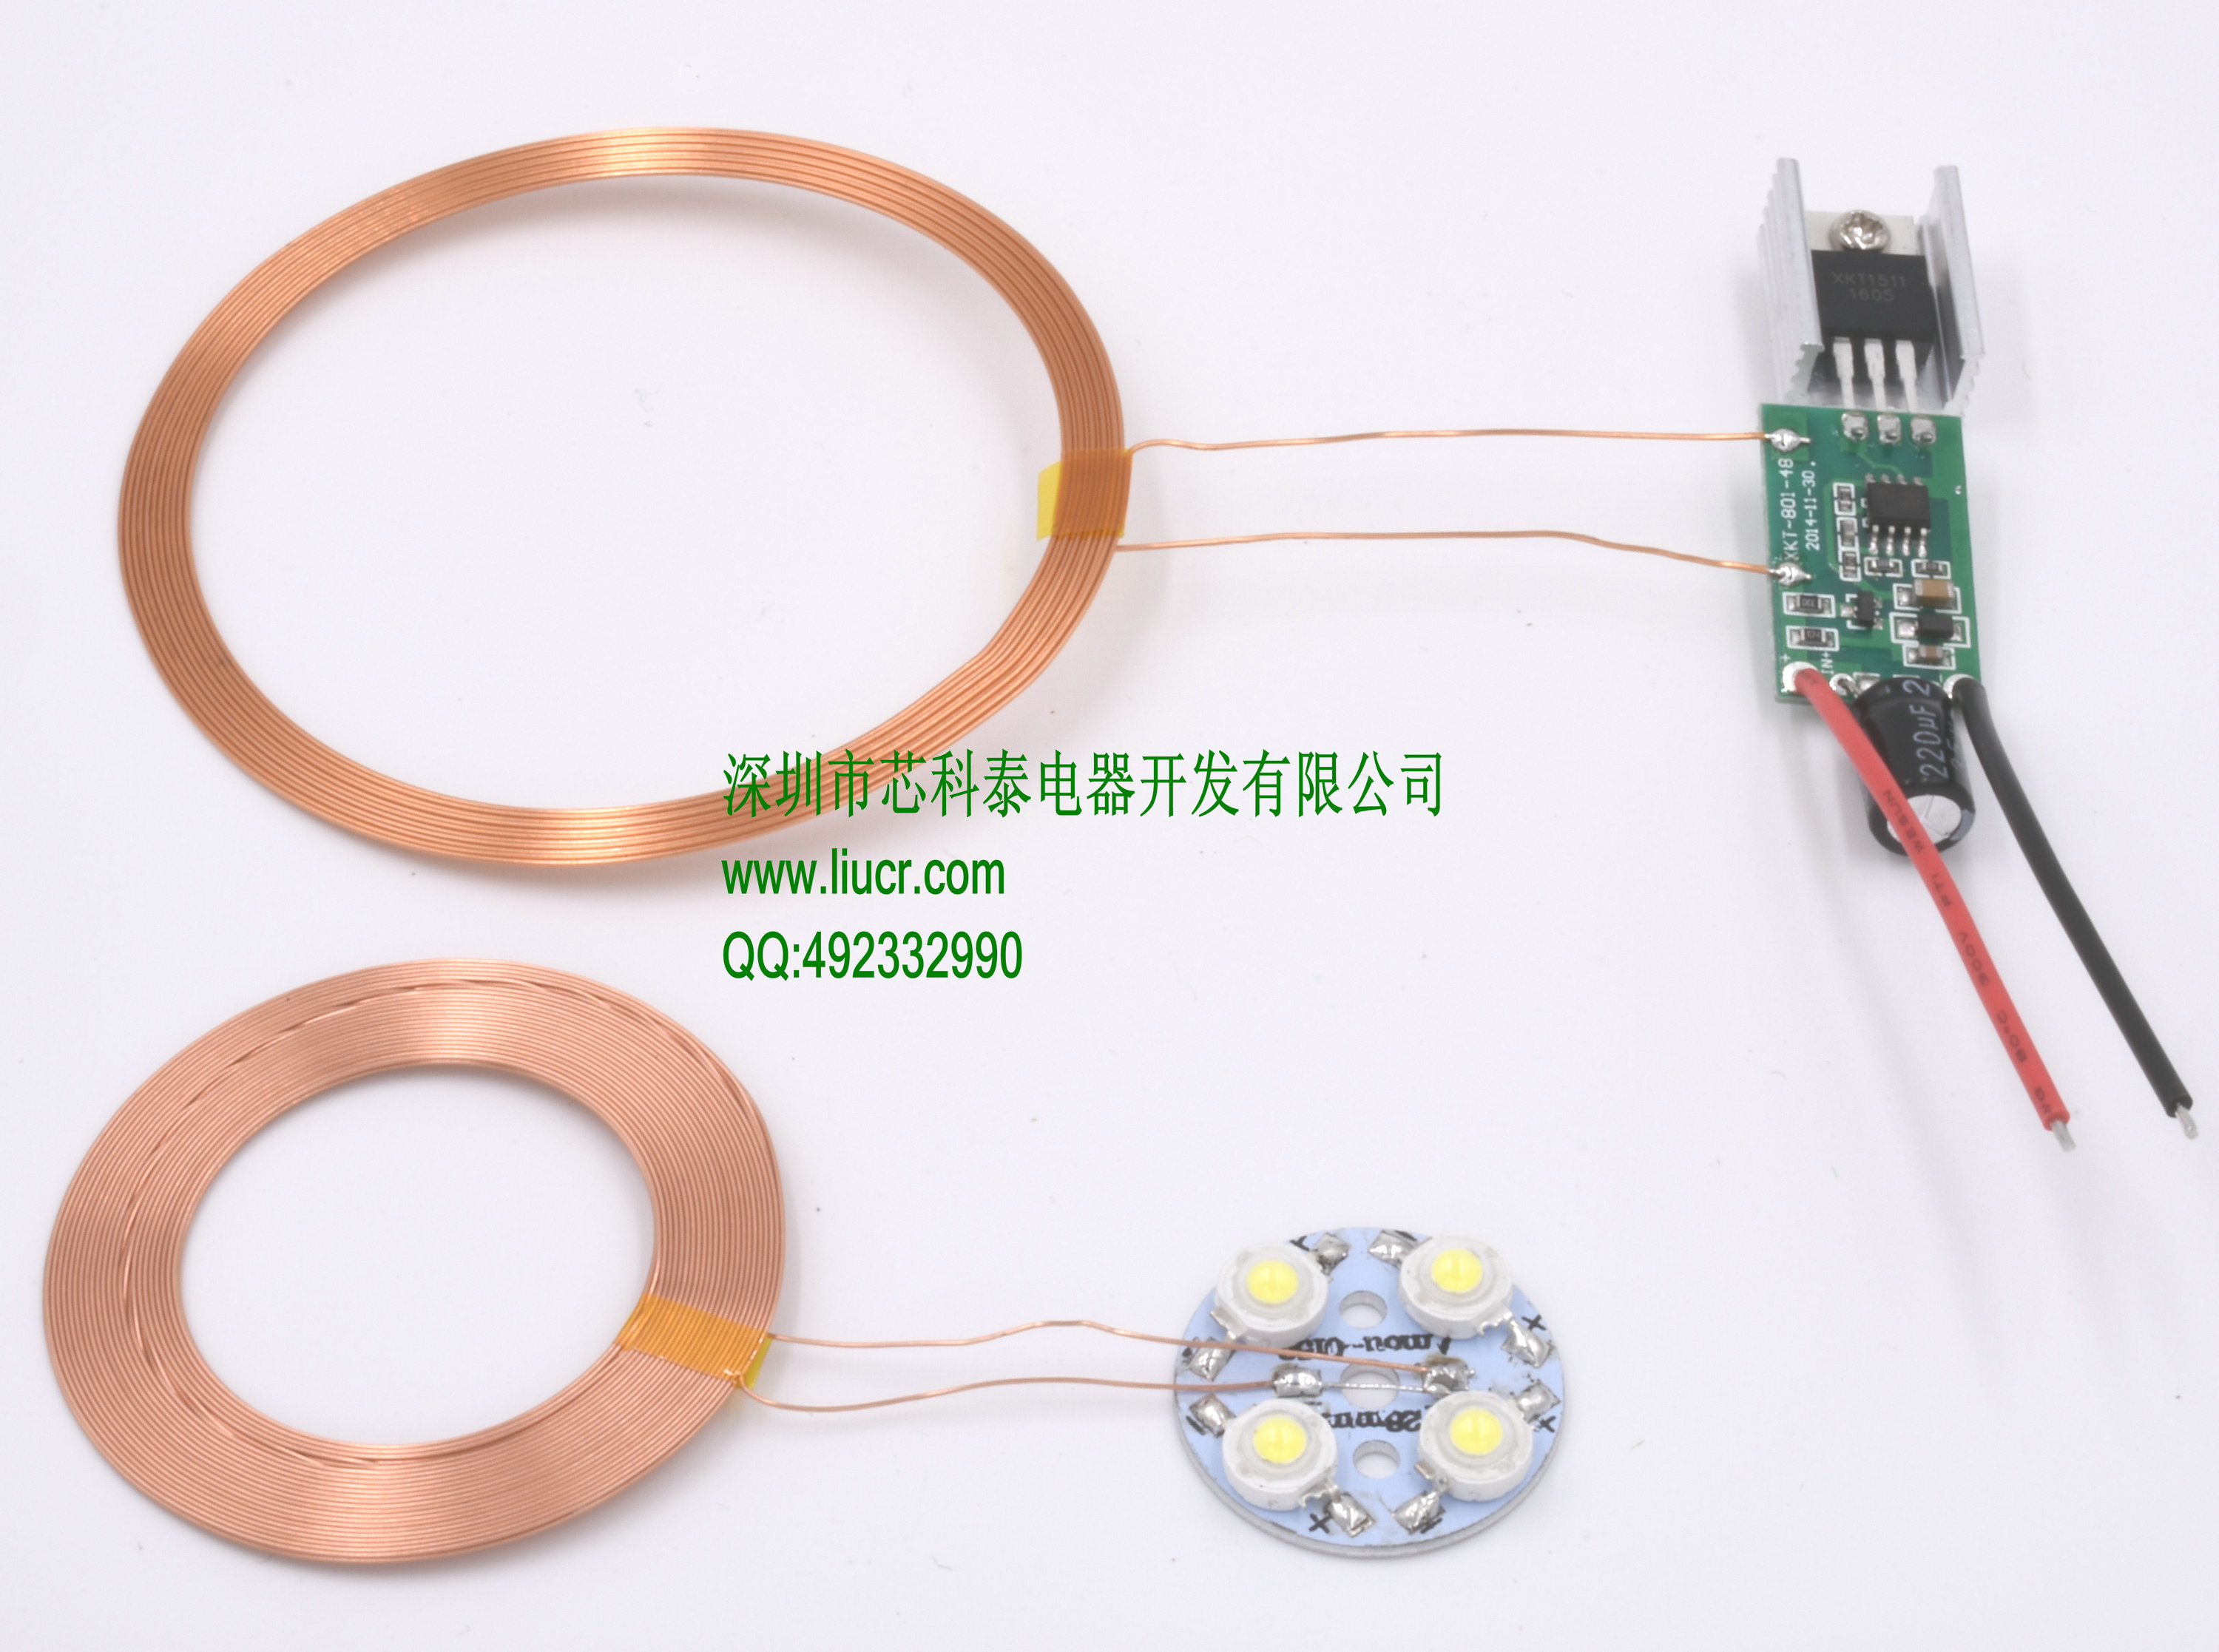 Wireless charging transmission module 200mm DC long-distance wireless power supply module 1 meter dc long distance wireless power supply charging module chip scheme wireless transmission module xkt801 05